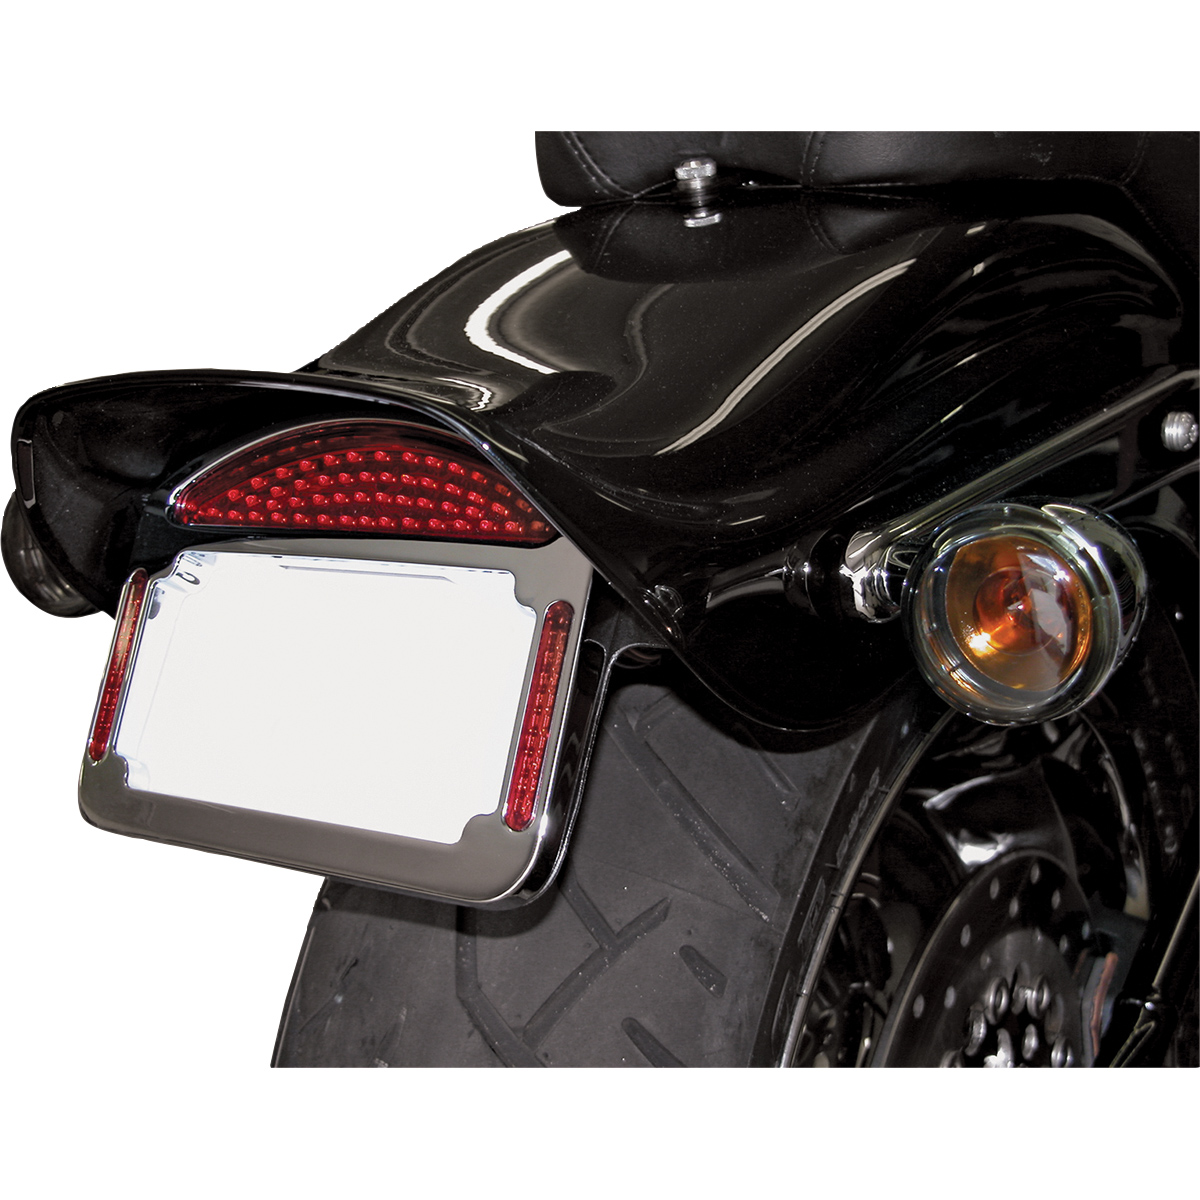 CycleVisions Eliminator Chrome LED Taillight/License Plate Frame ...